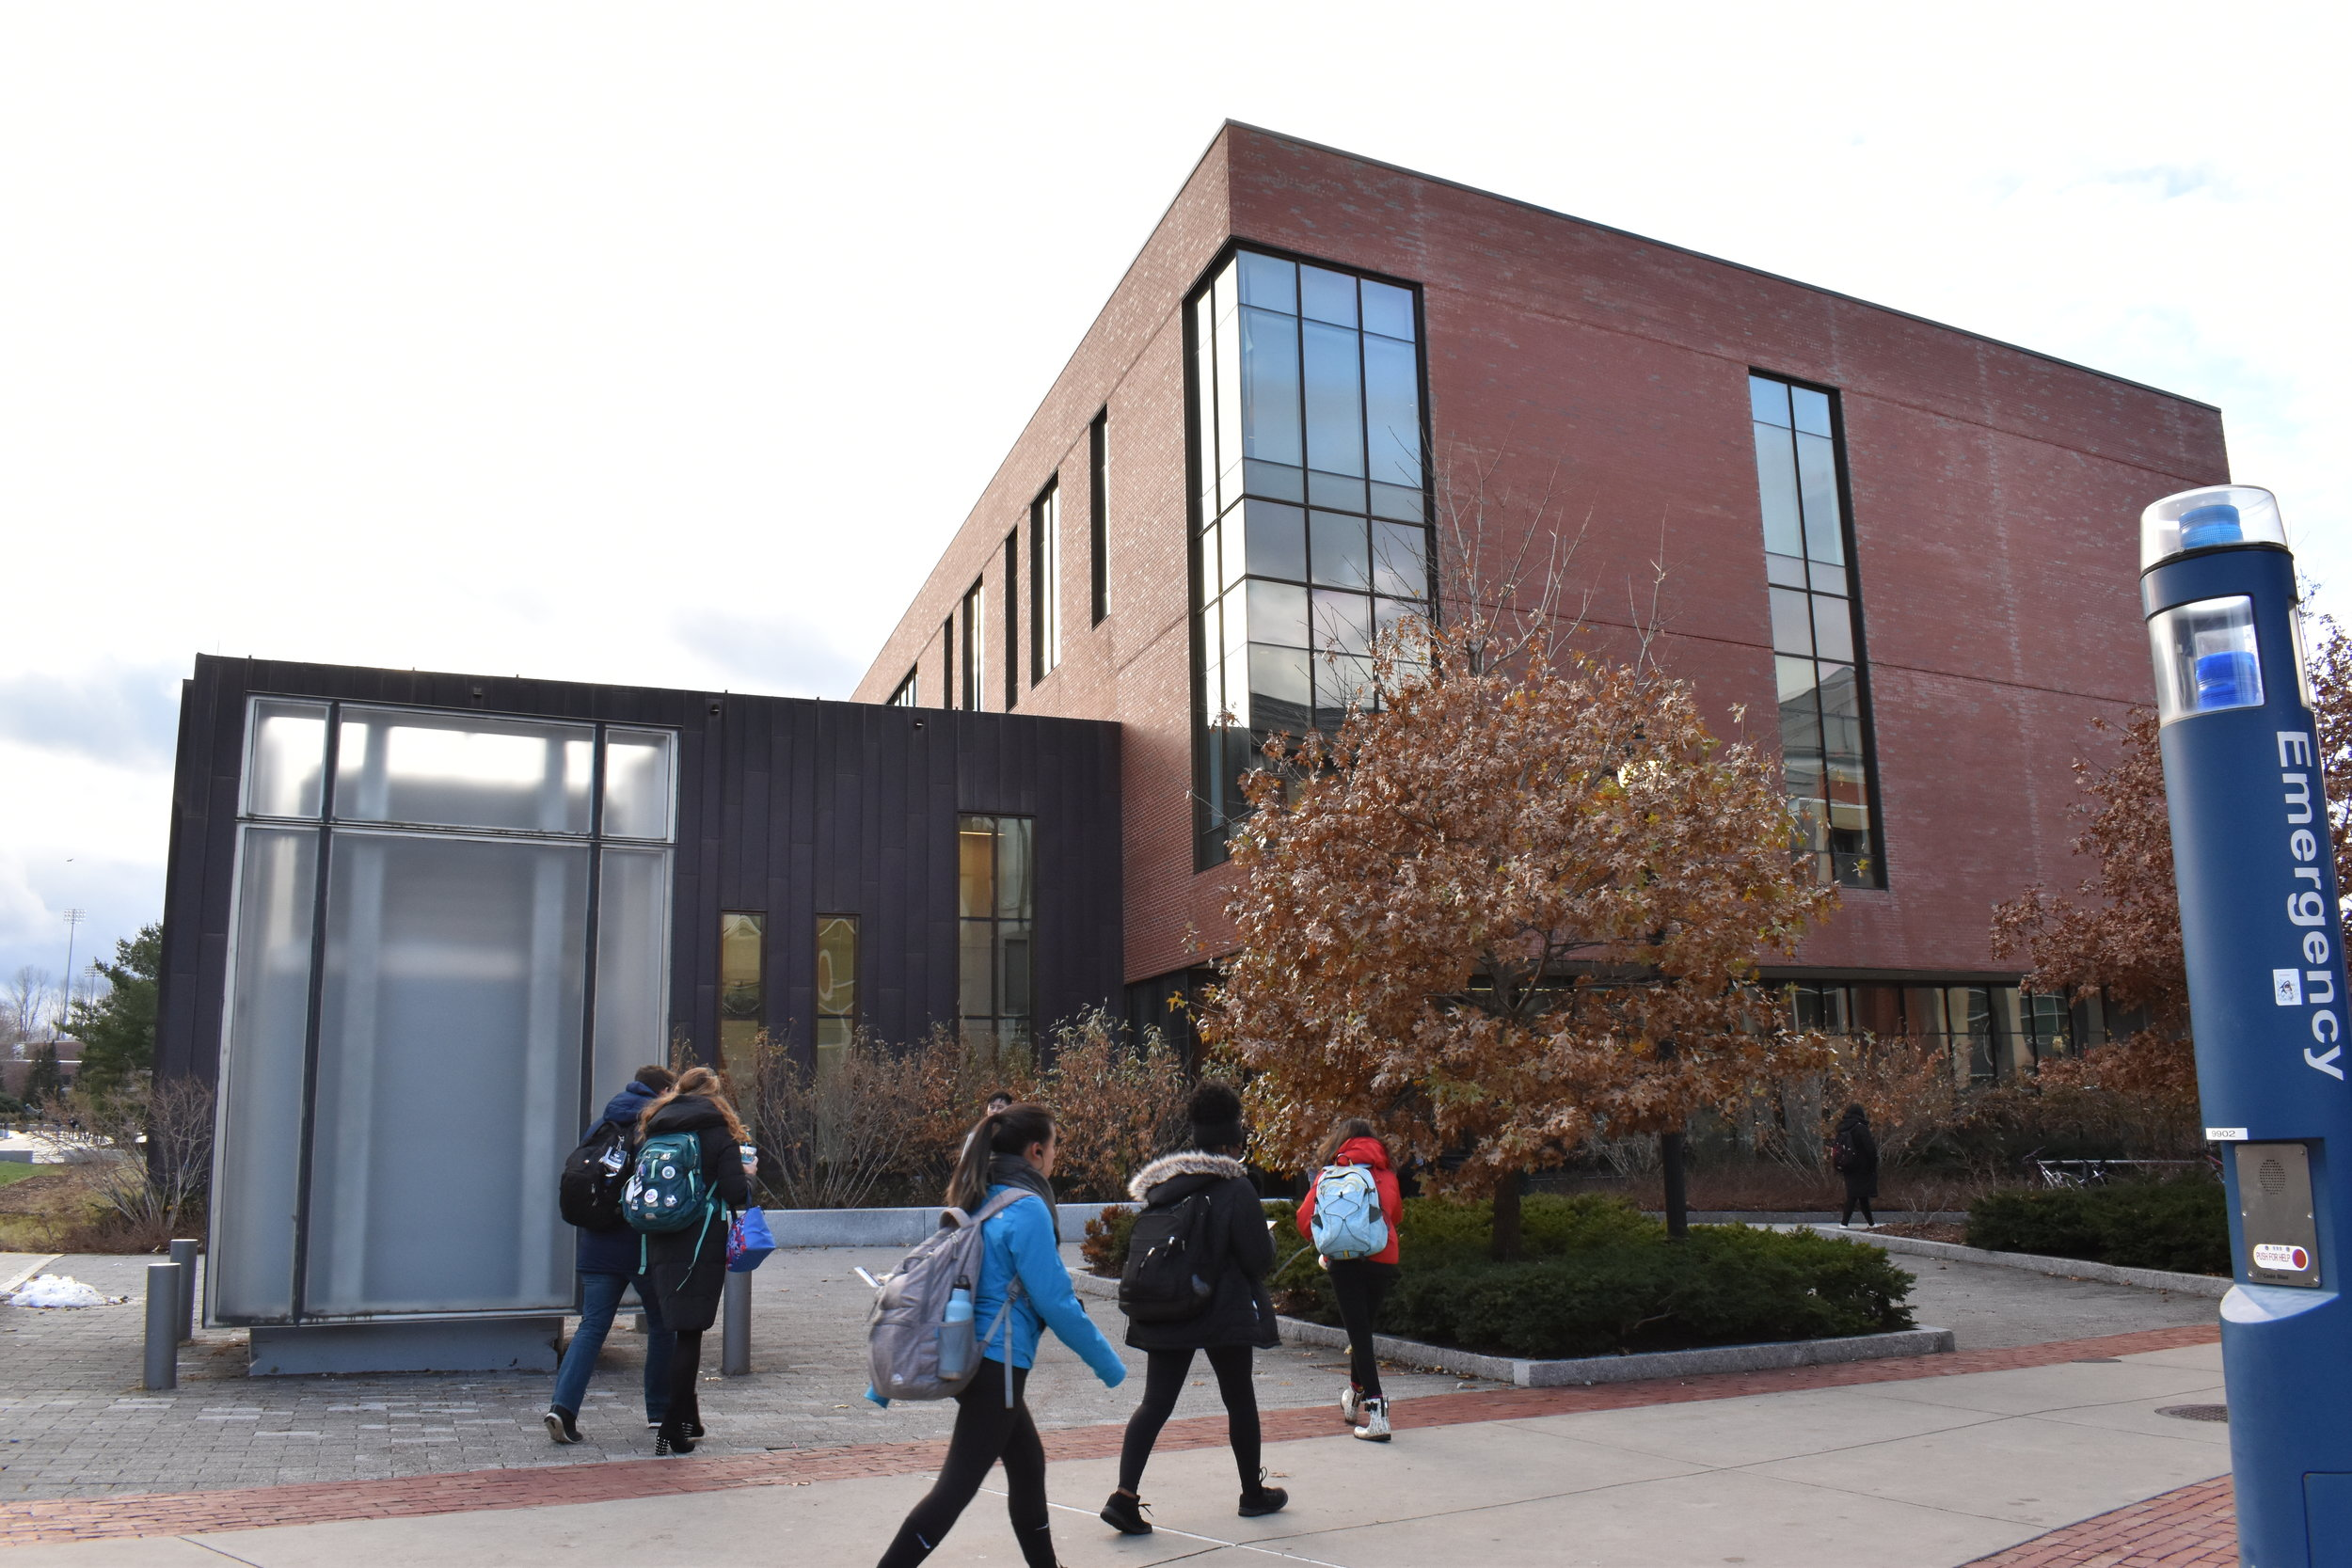 """McHugh Hall, which was previously called """"Laurel Hall"""" prior to last year. It is one of many buildings on campus referred to by more than one name.  Photo by Brandon Barzola / The Daily Campus"""